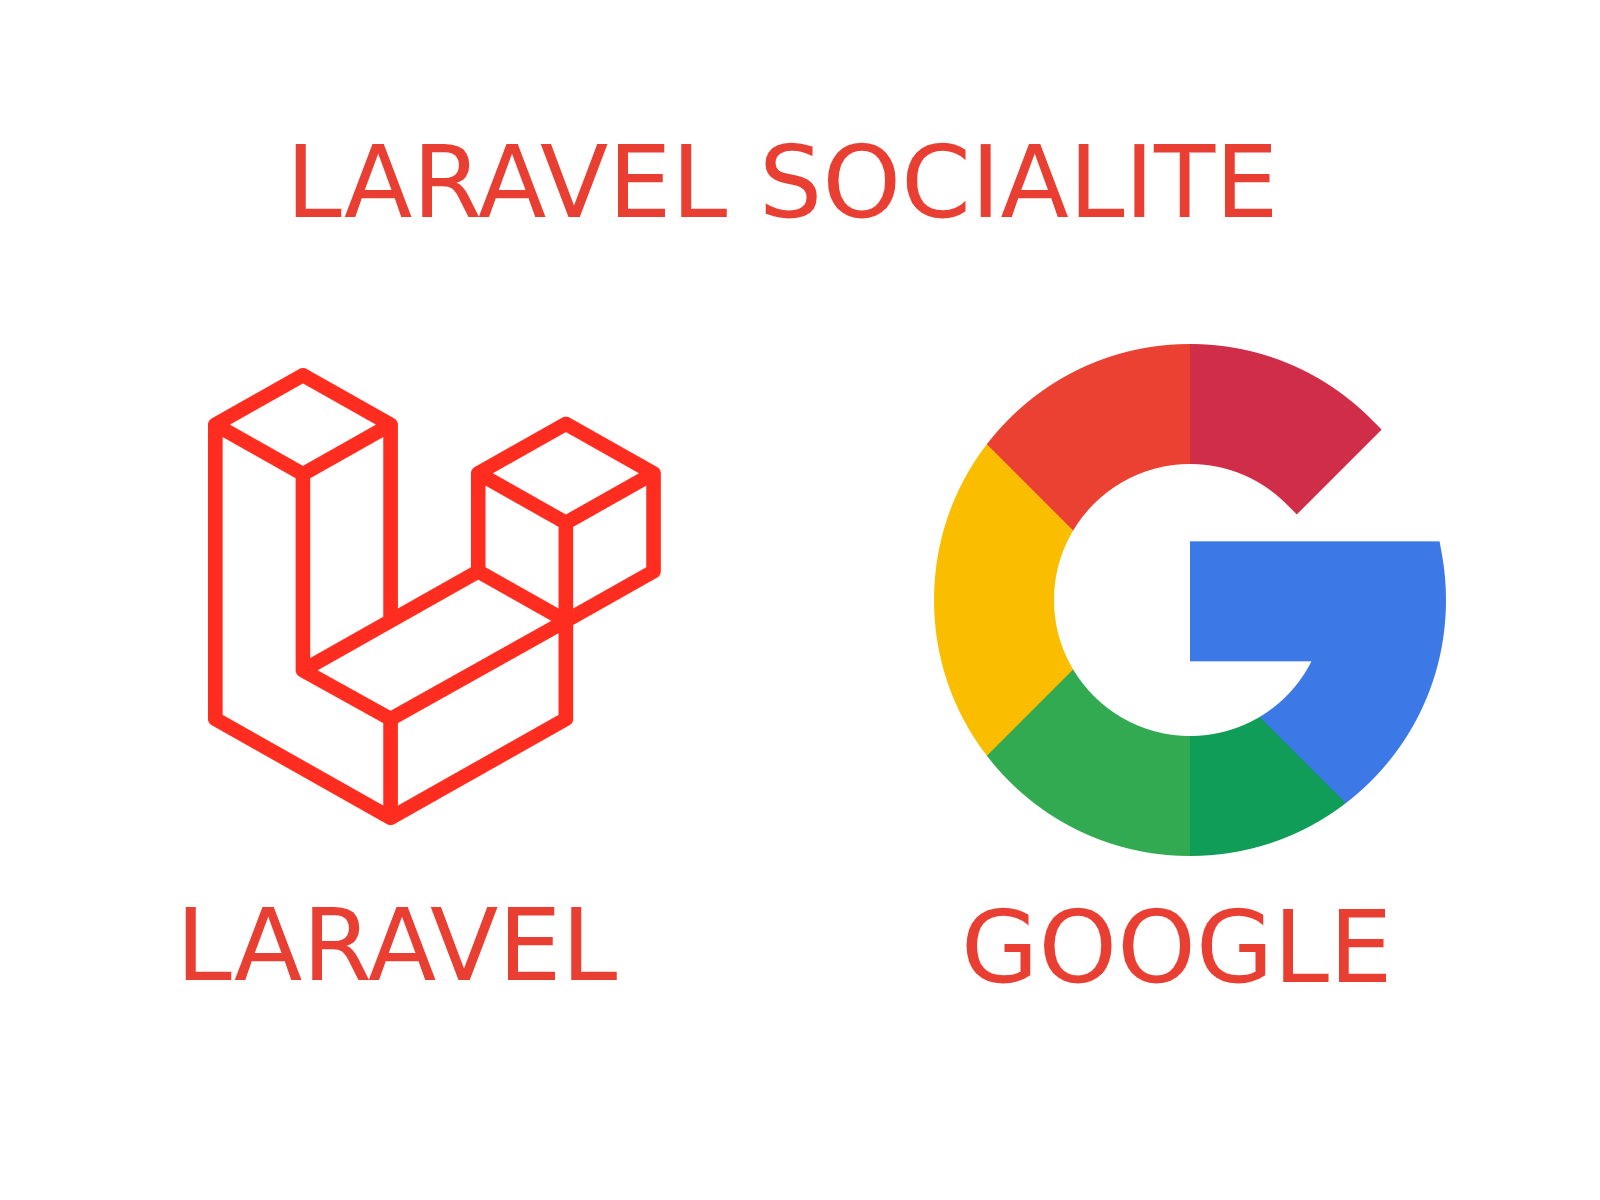 LOGIN WITH GOOGLE IN LARAVEL